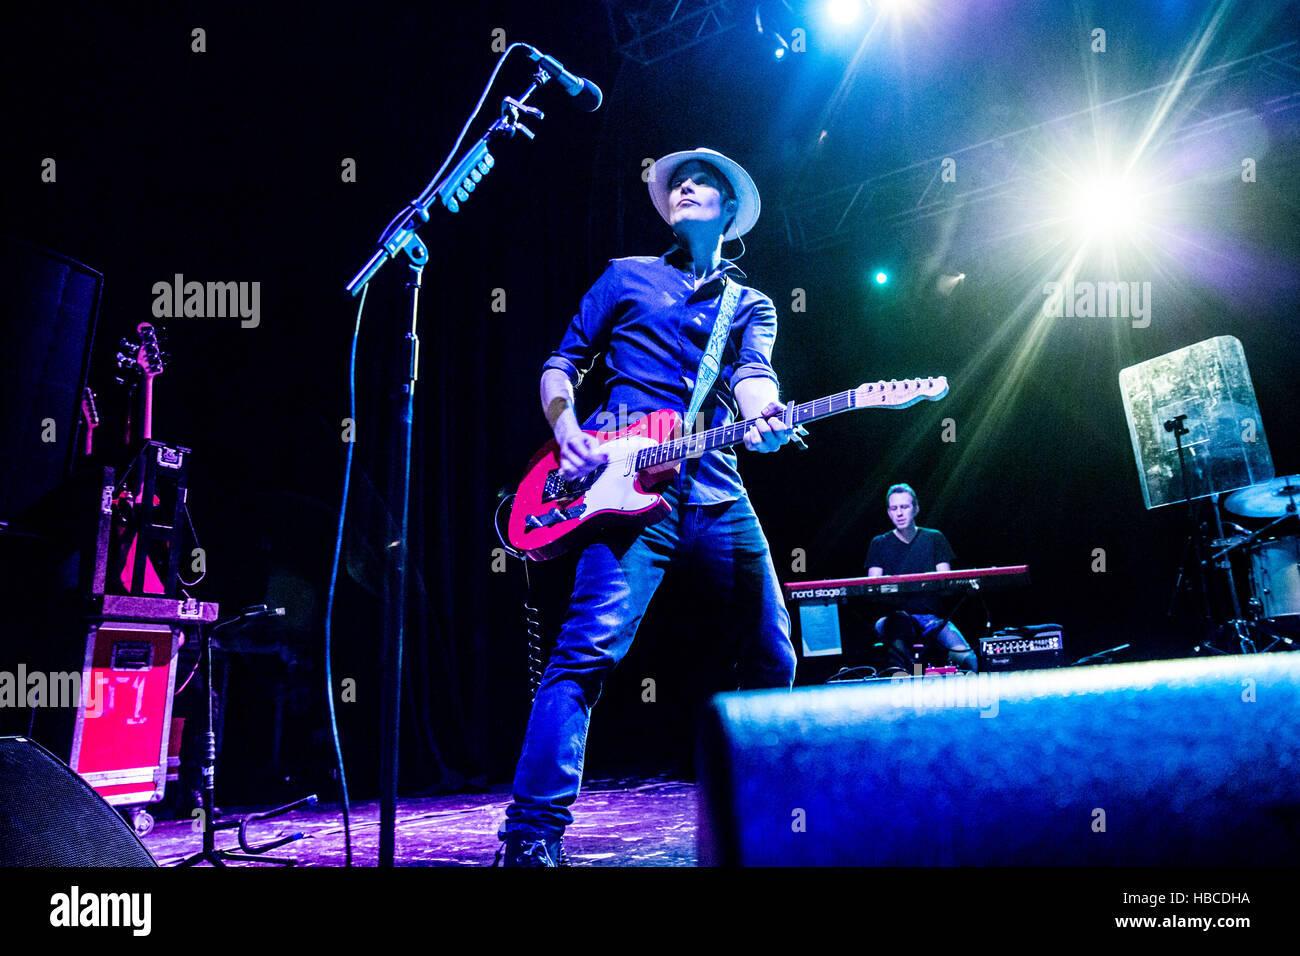 Bournemouth, UK. 4th Dec, 2016. The Fratellis live in concert at the O2 Academy Bournemouth Credit:  Charlie Raven/Alamy - Stock Image